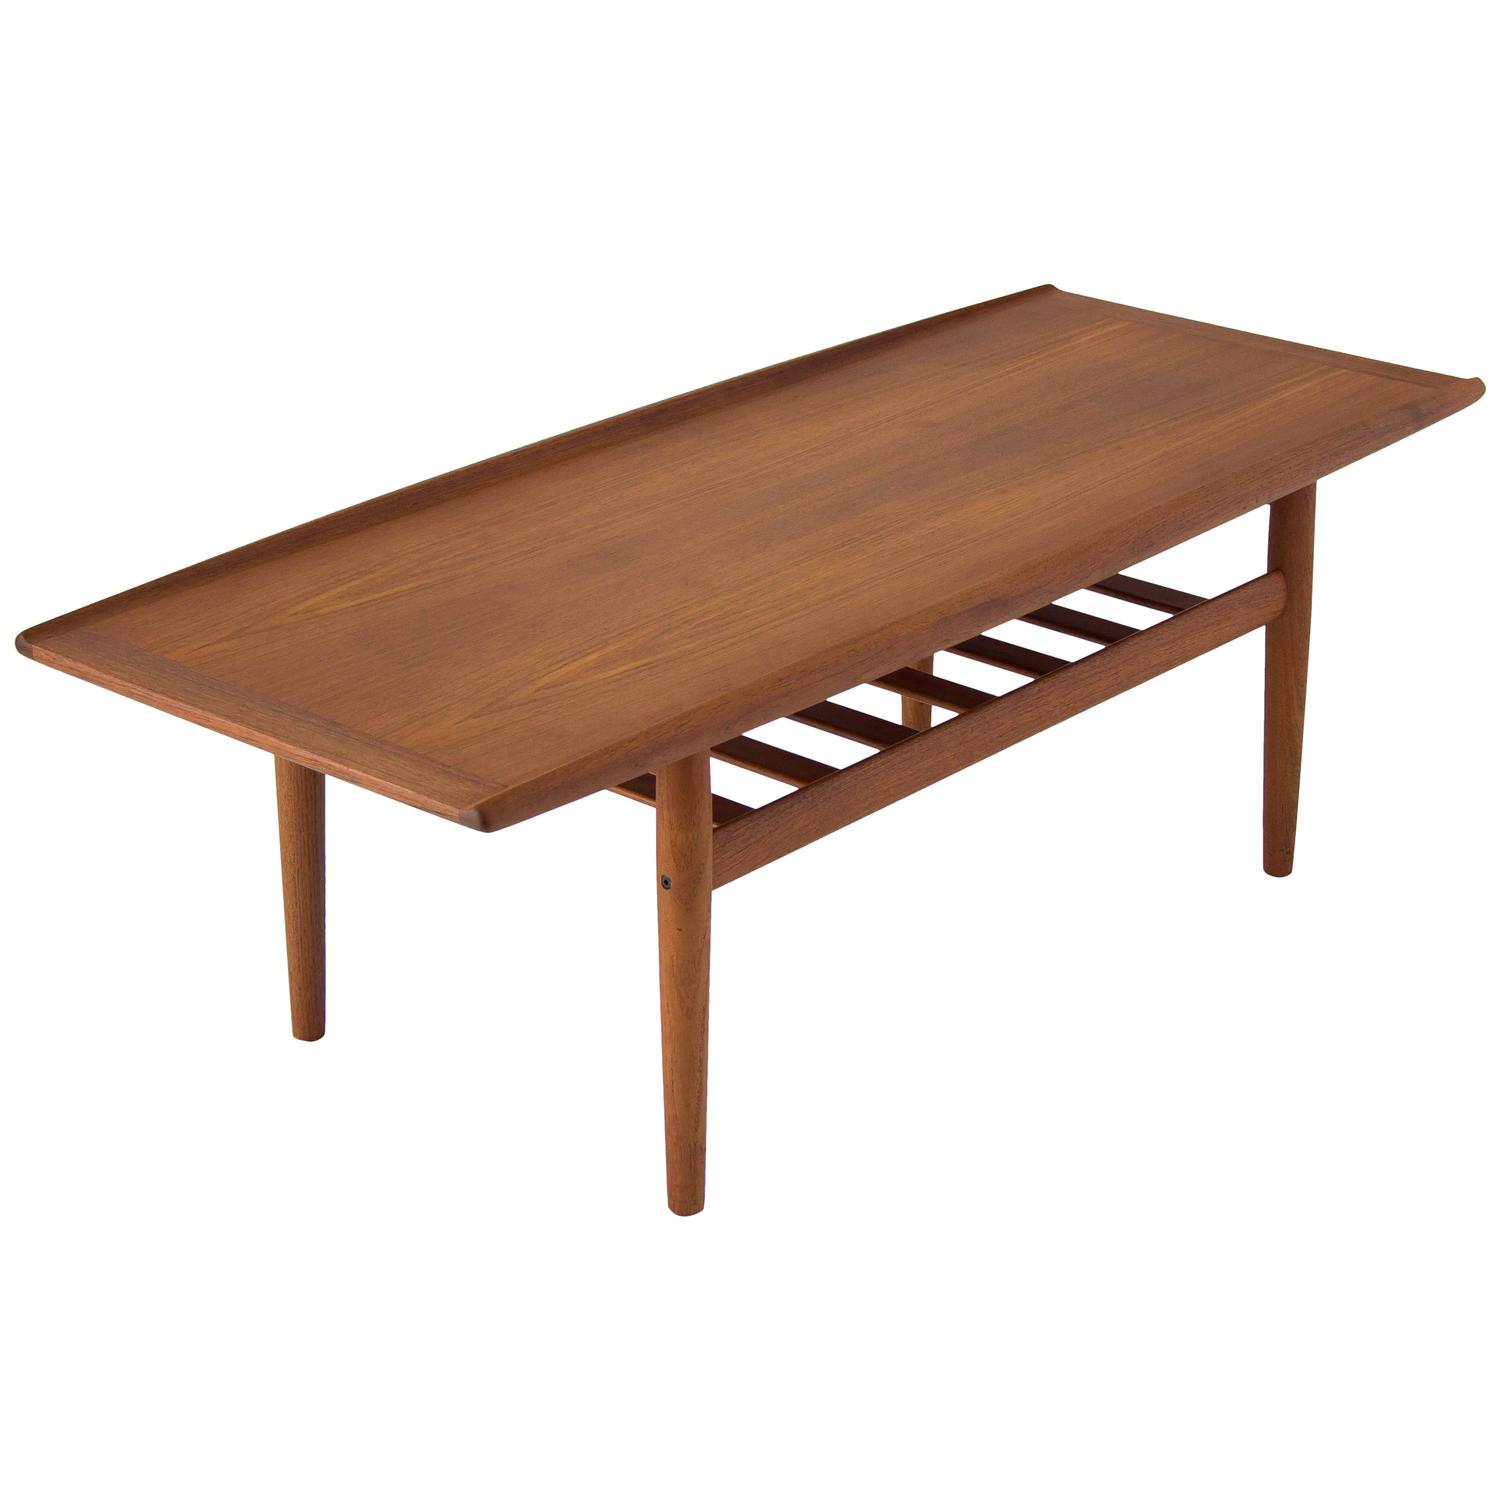 Grete Jalk Coffee Table with Slatted Shelf at 1stdibs